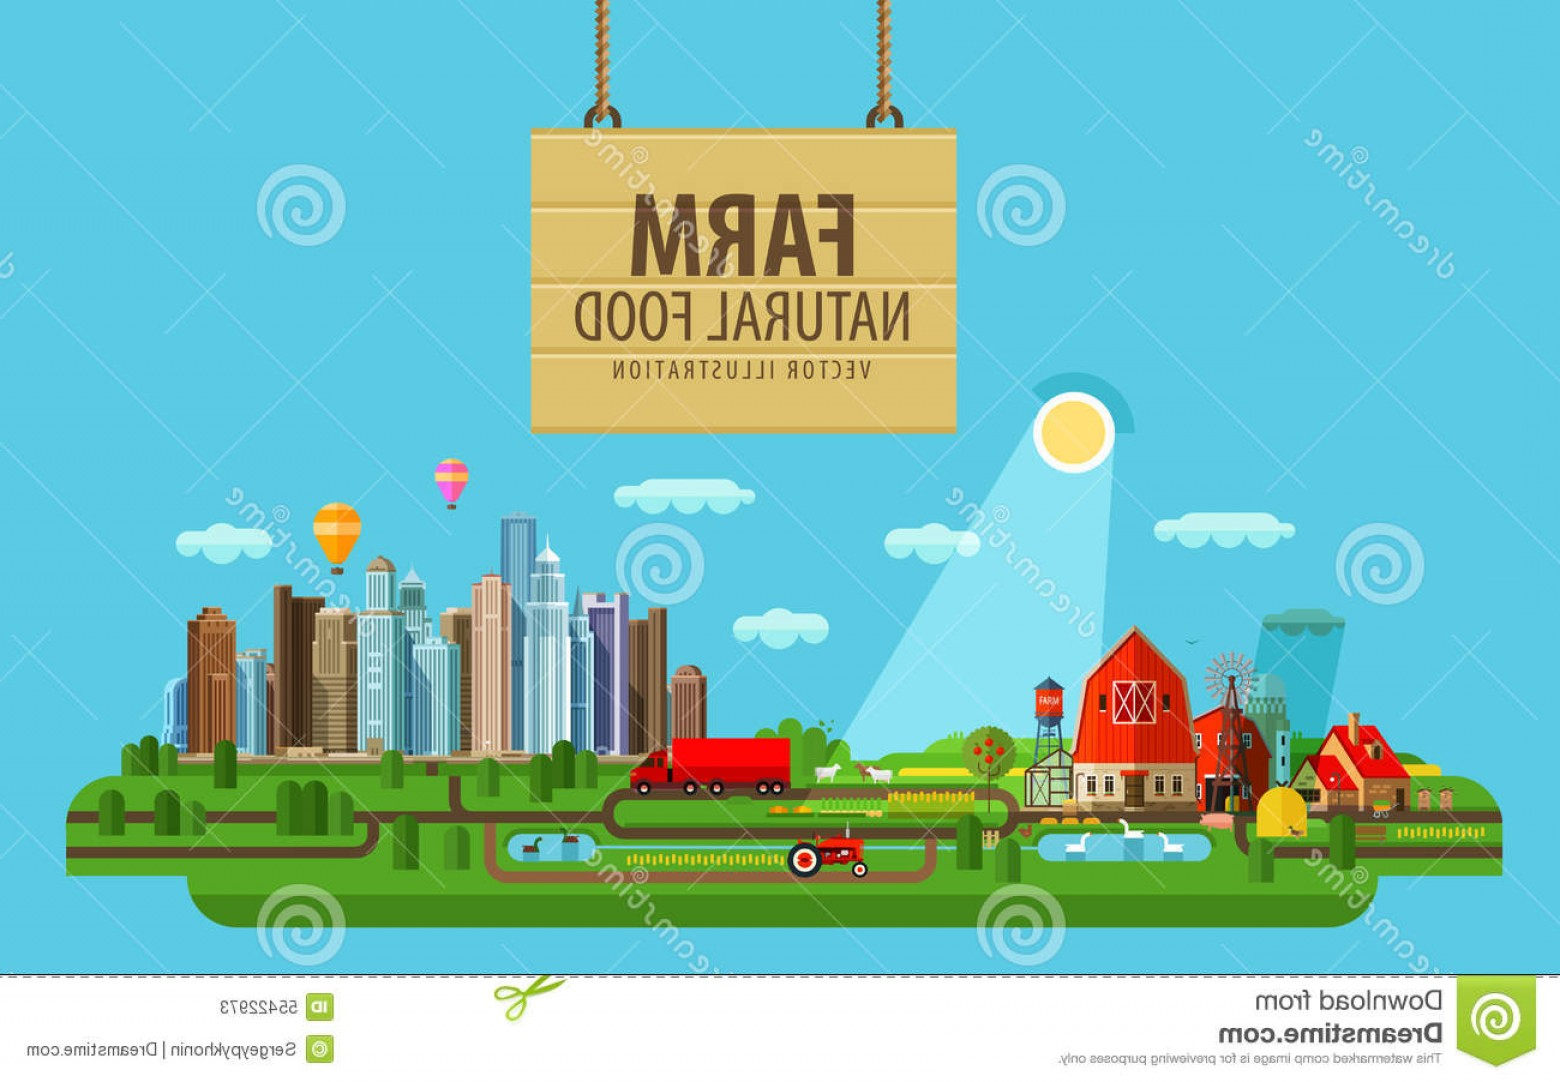 Farm Vector Illustration: Stock Illustration Natural Food Farm City Vector Illustration Buildings Greenhouses Flat Image